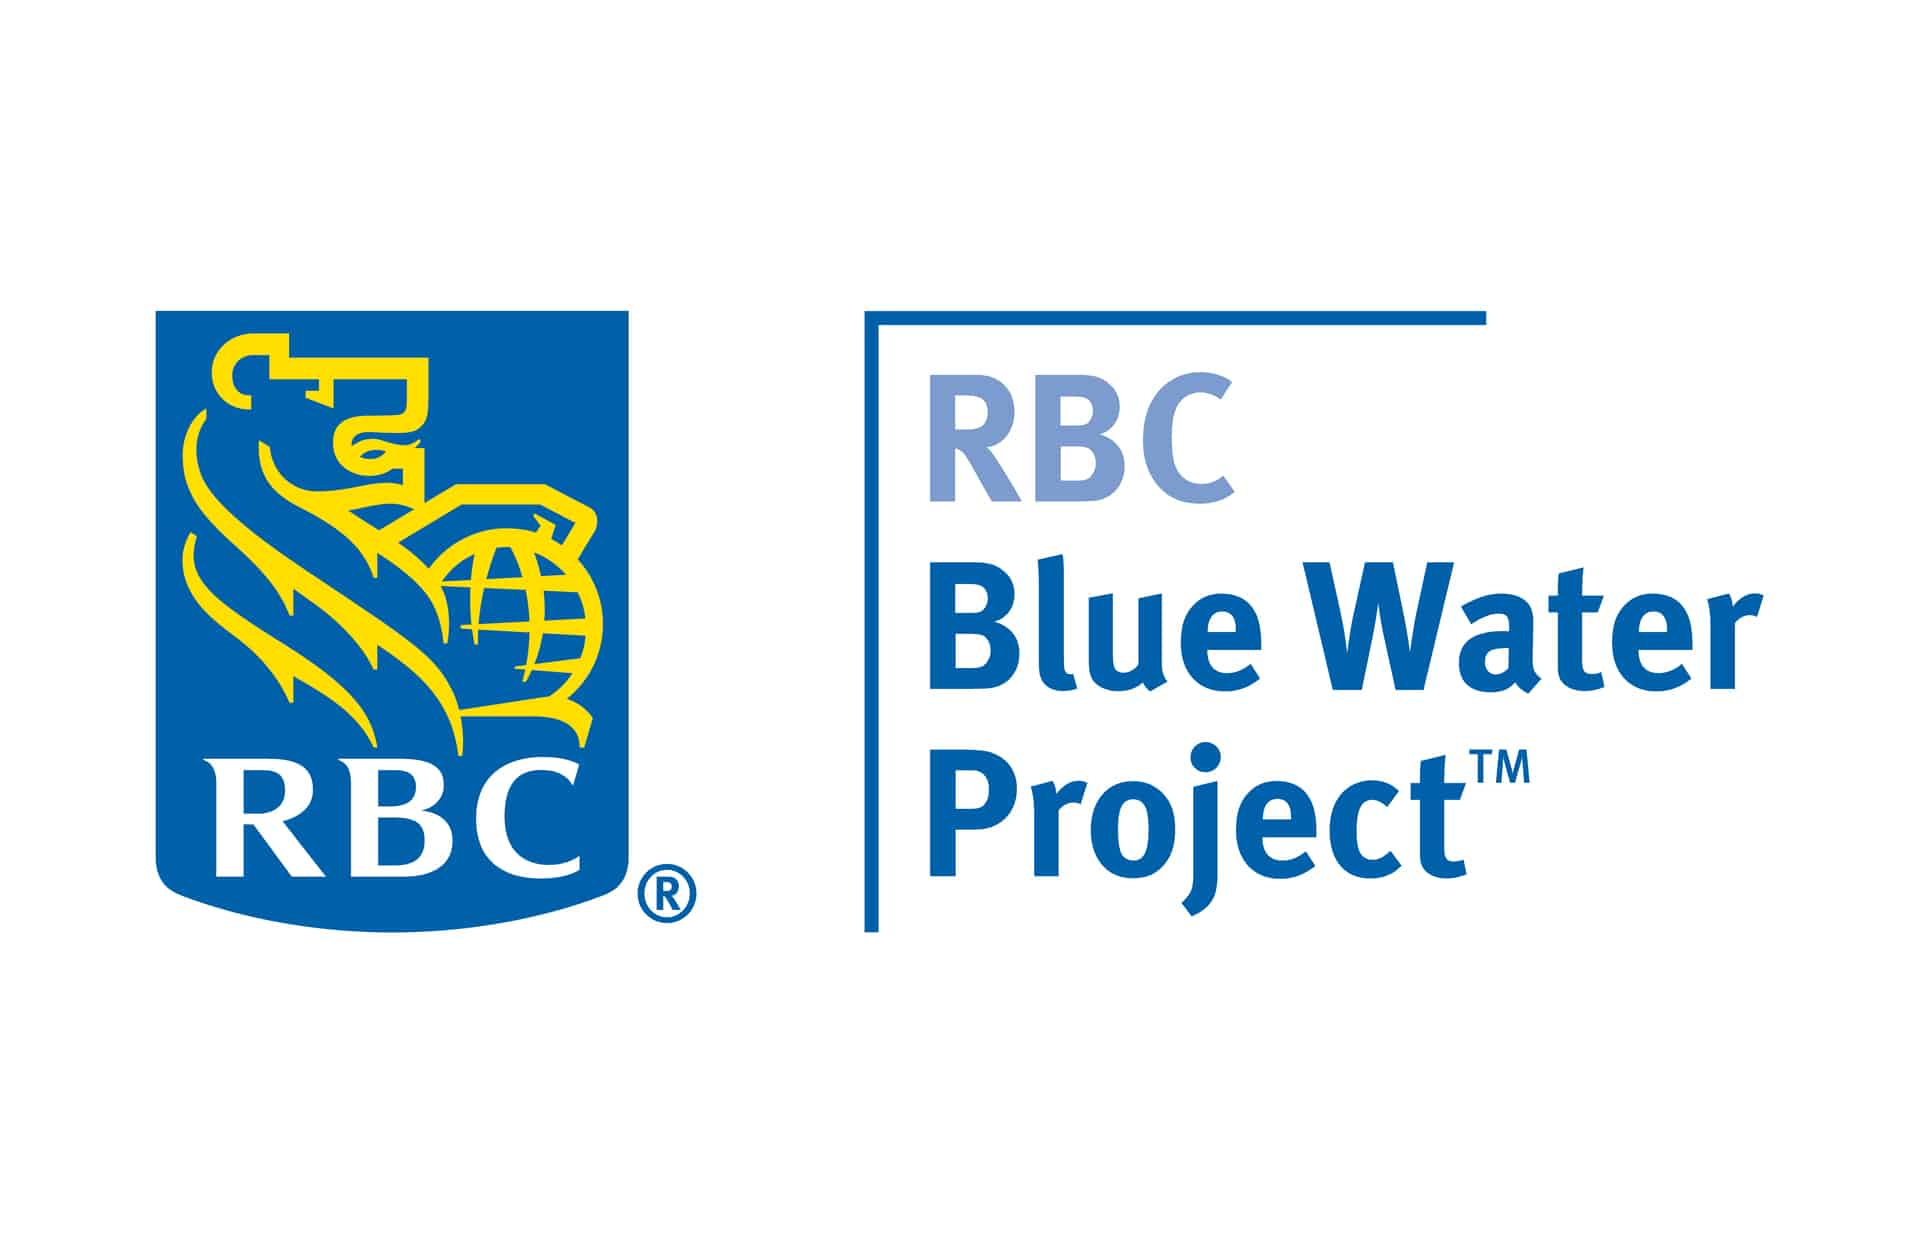 RBC_Blue_Water_Project_logo